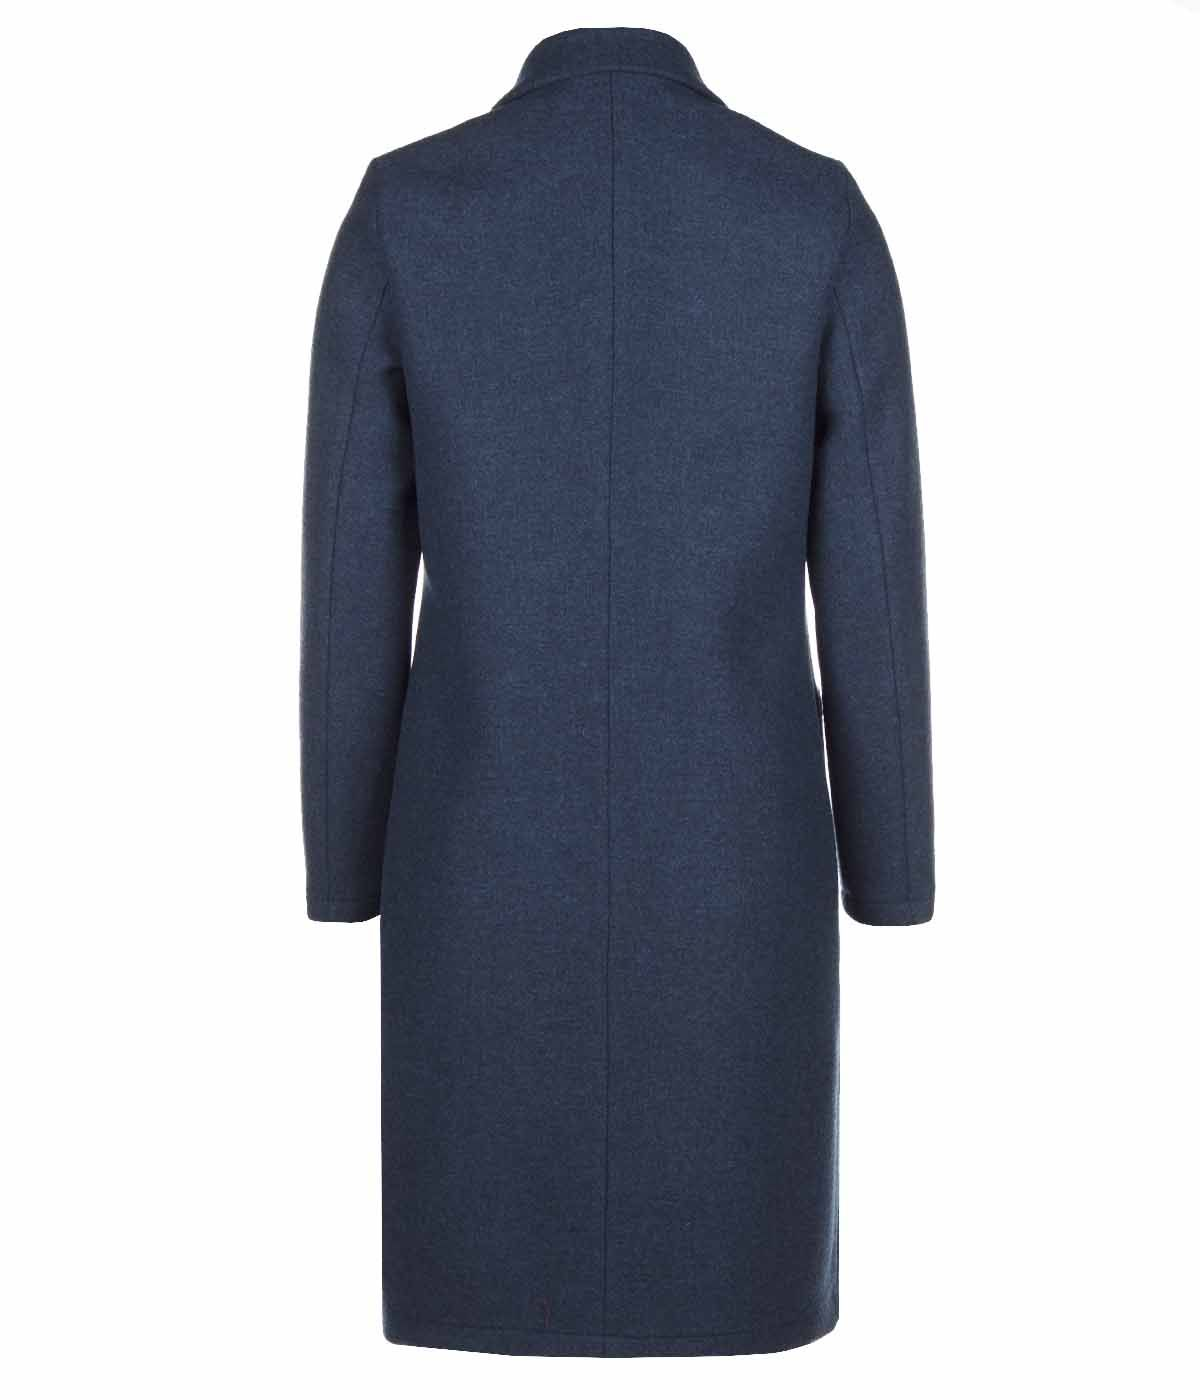 DARK BLUE WOOL COAT WITH ASYMMETRIC CLOSURE 1